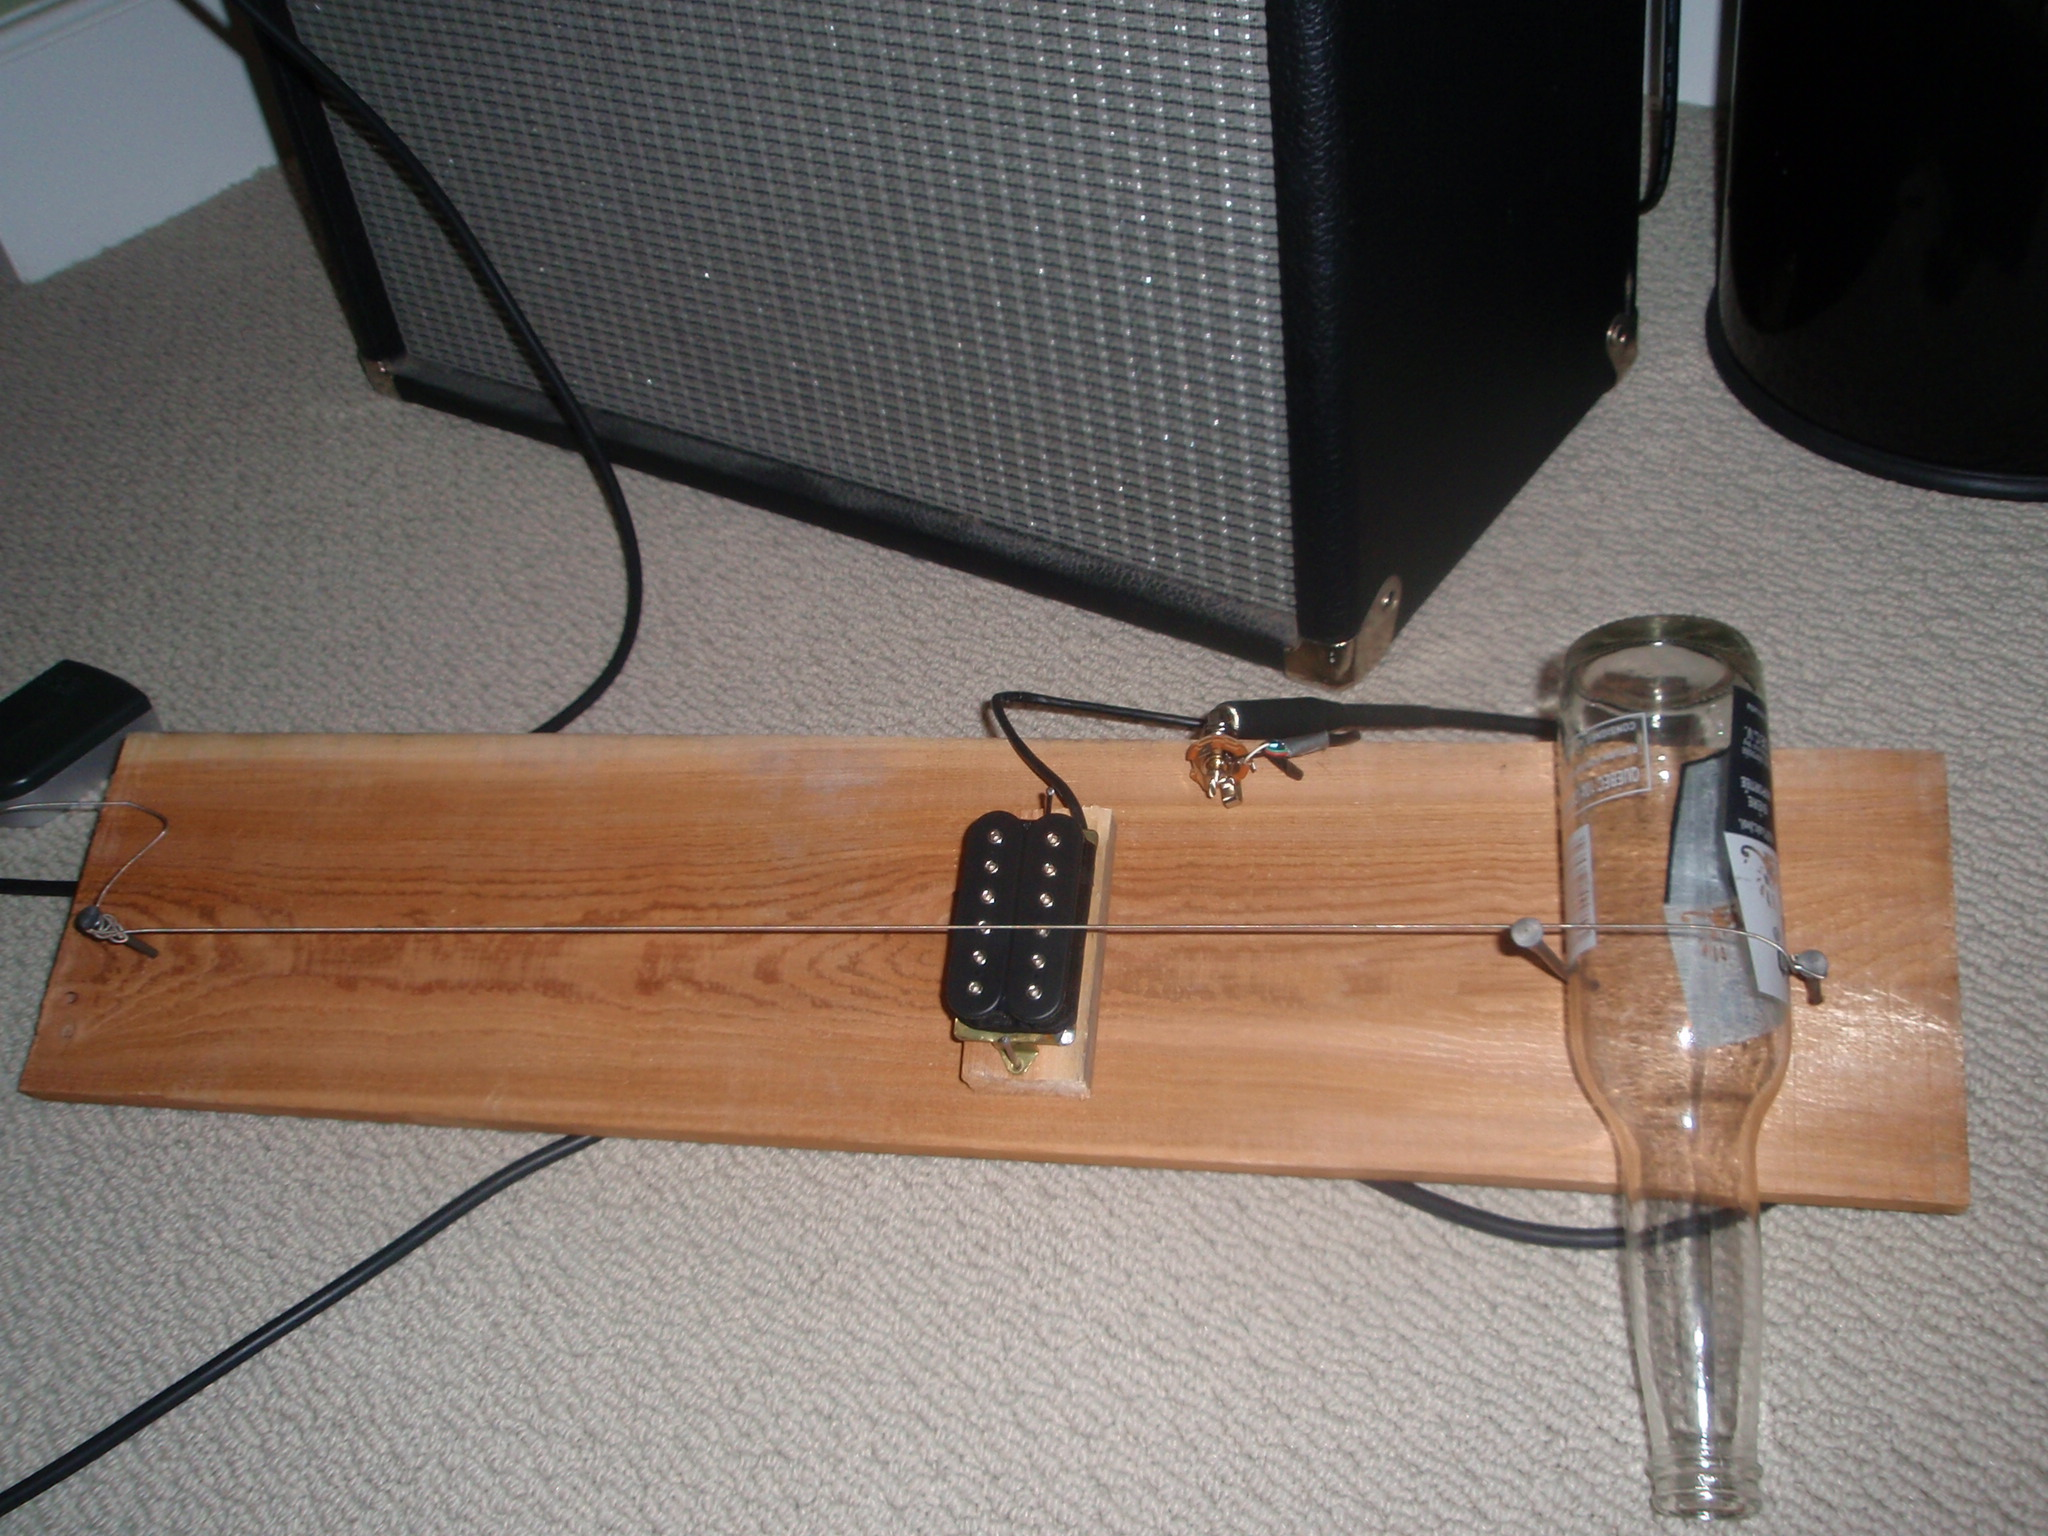 Homemade Diddley Bow Electric Slide Guitar (a la Jack White)